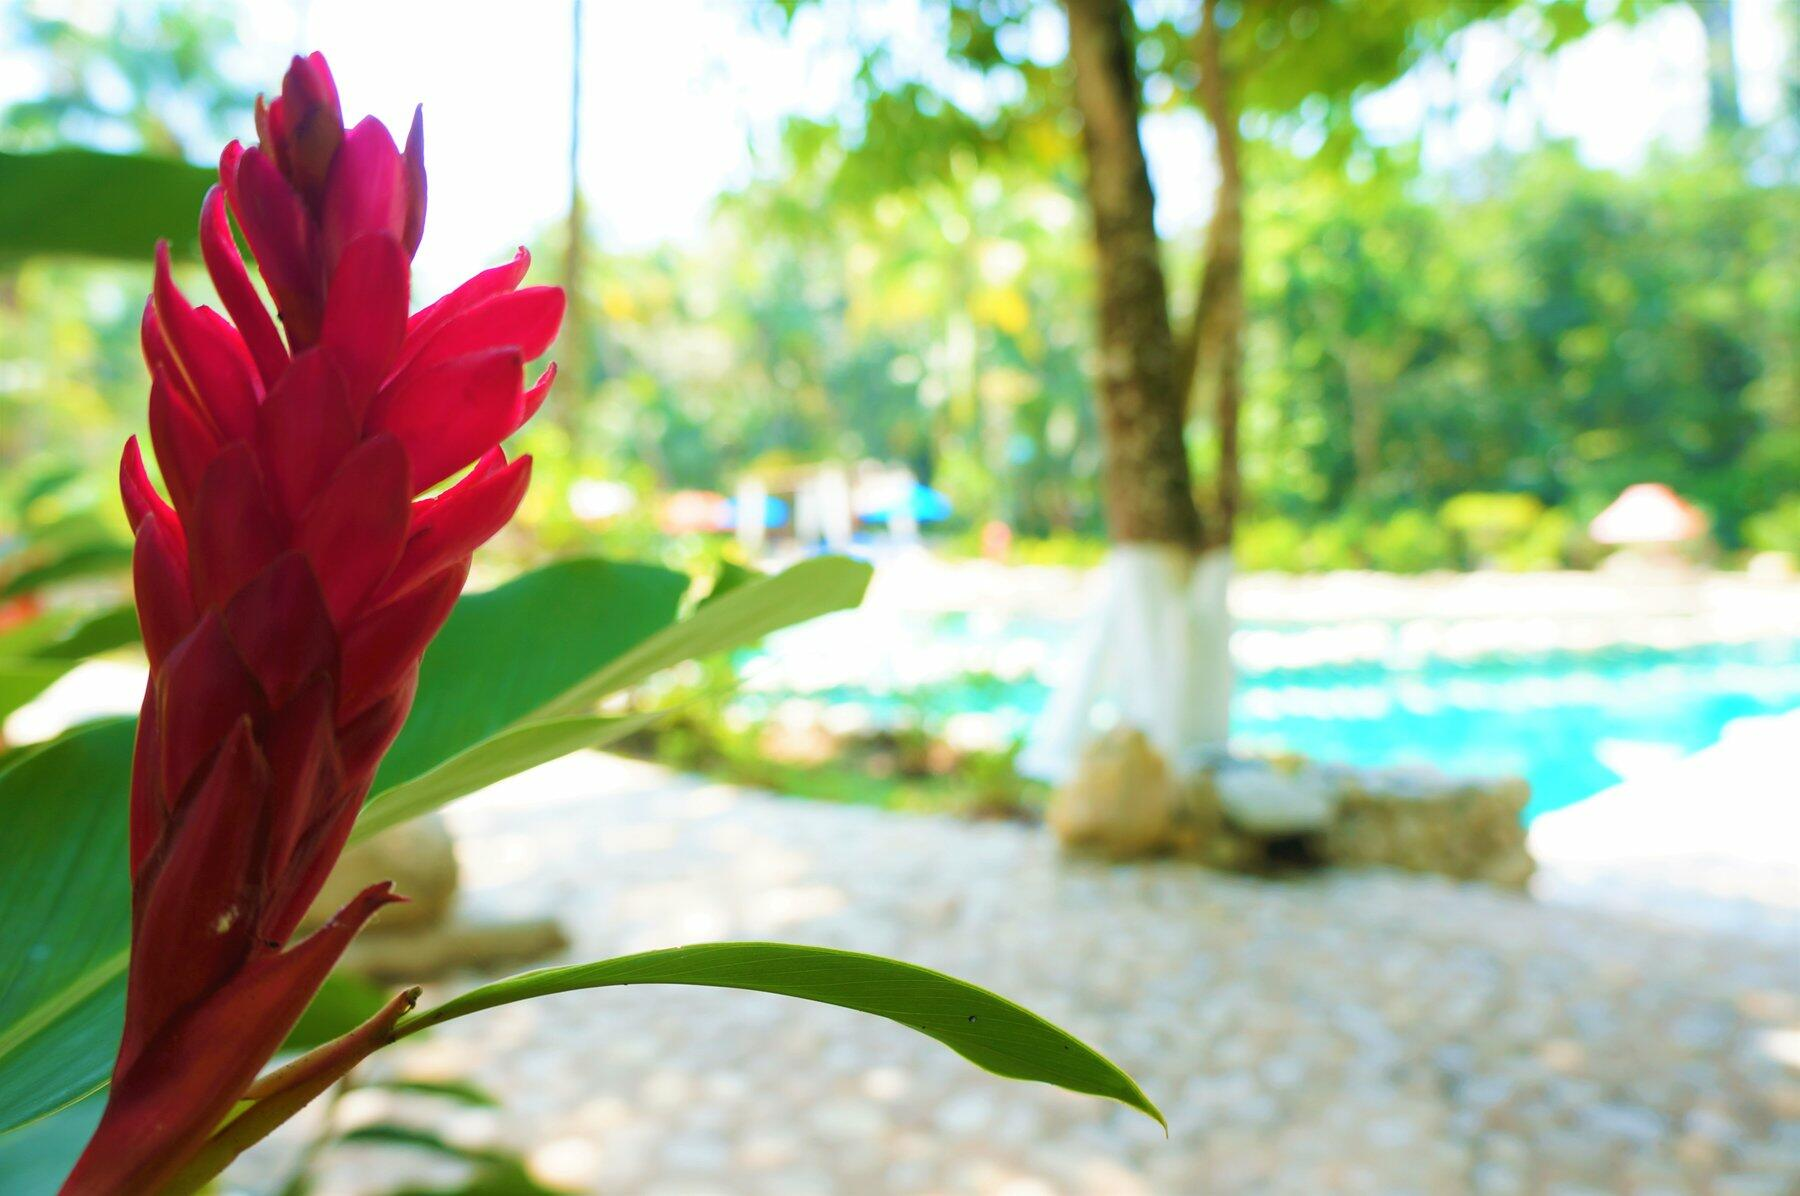 a red flower by a pool